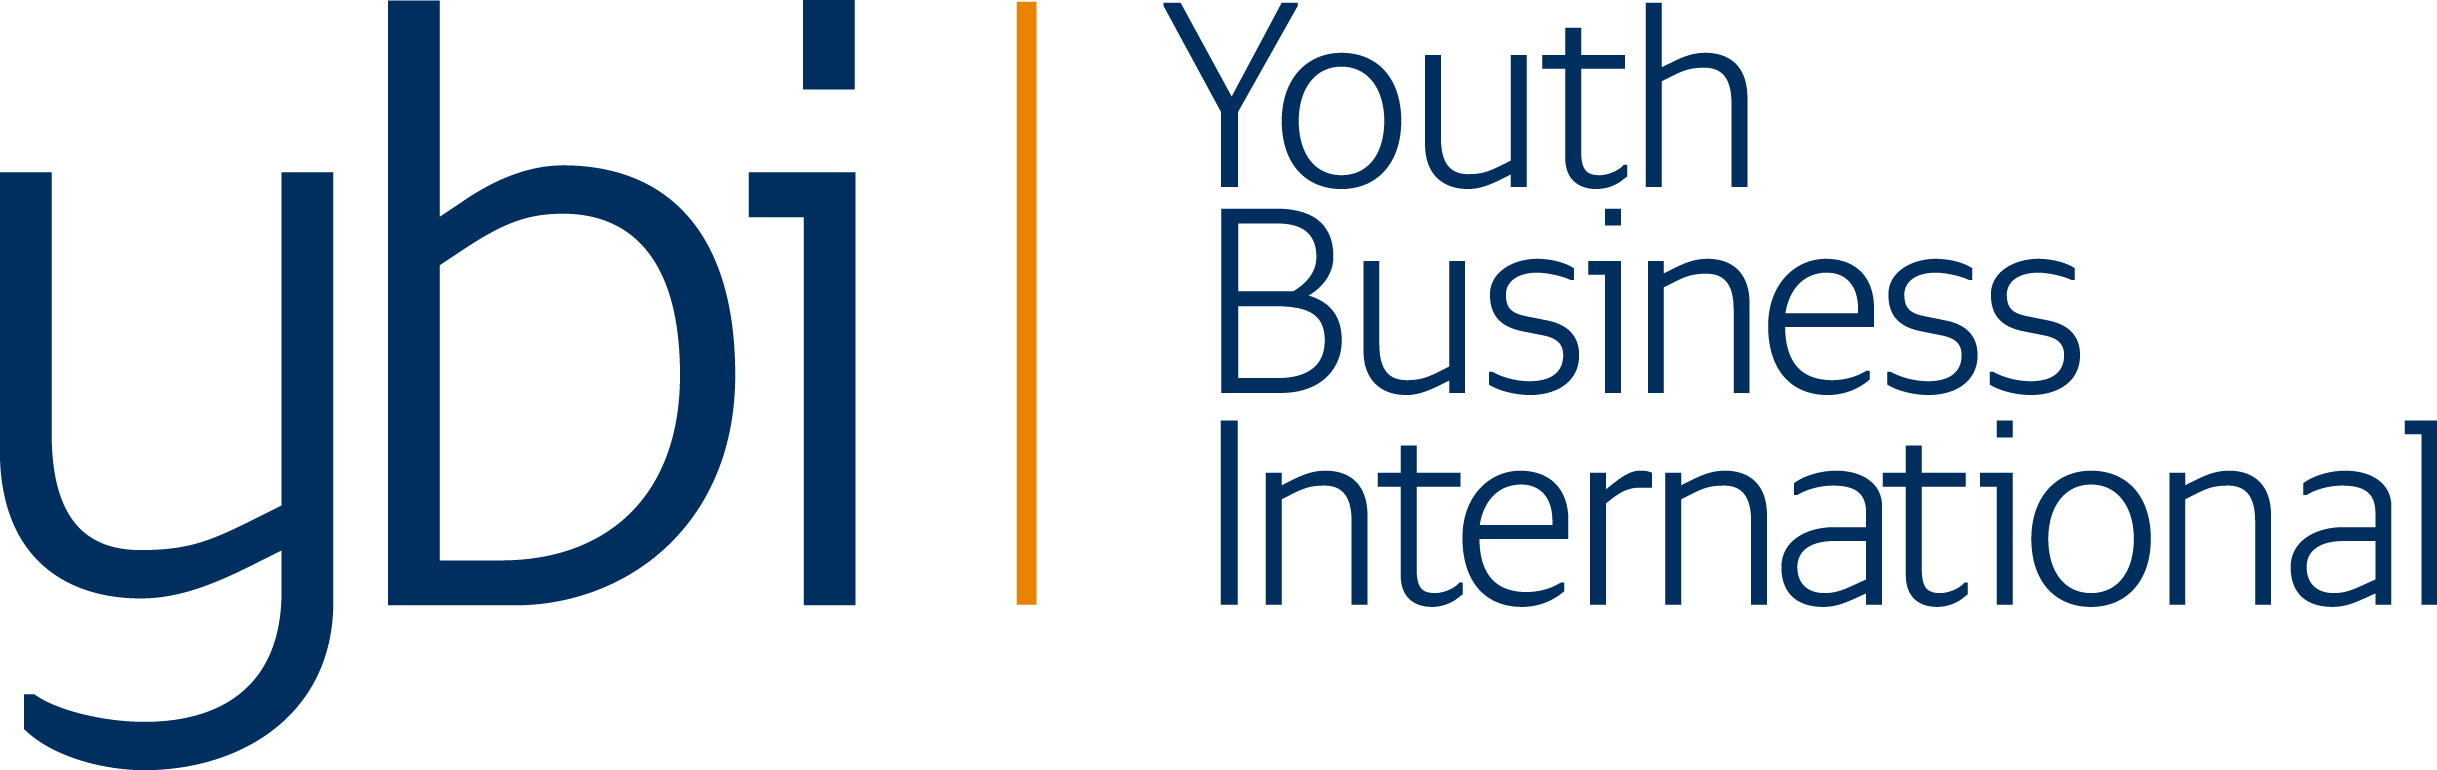 Youth Business International לוגו